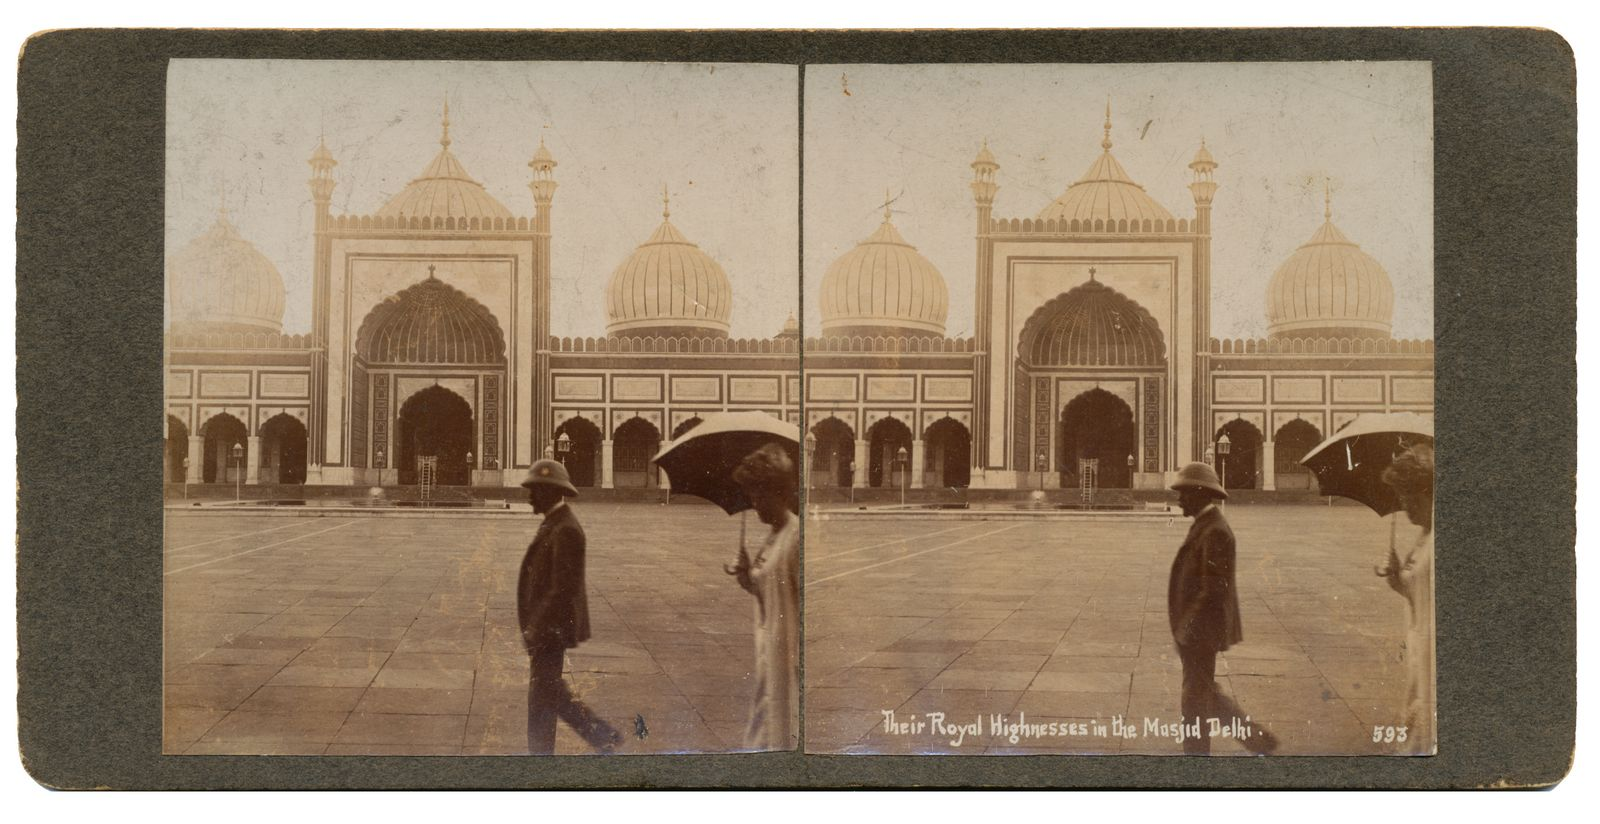 The Royal Highnesses in the Masjid Delhi 1905-06